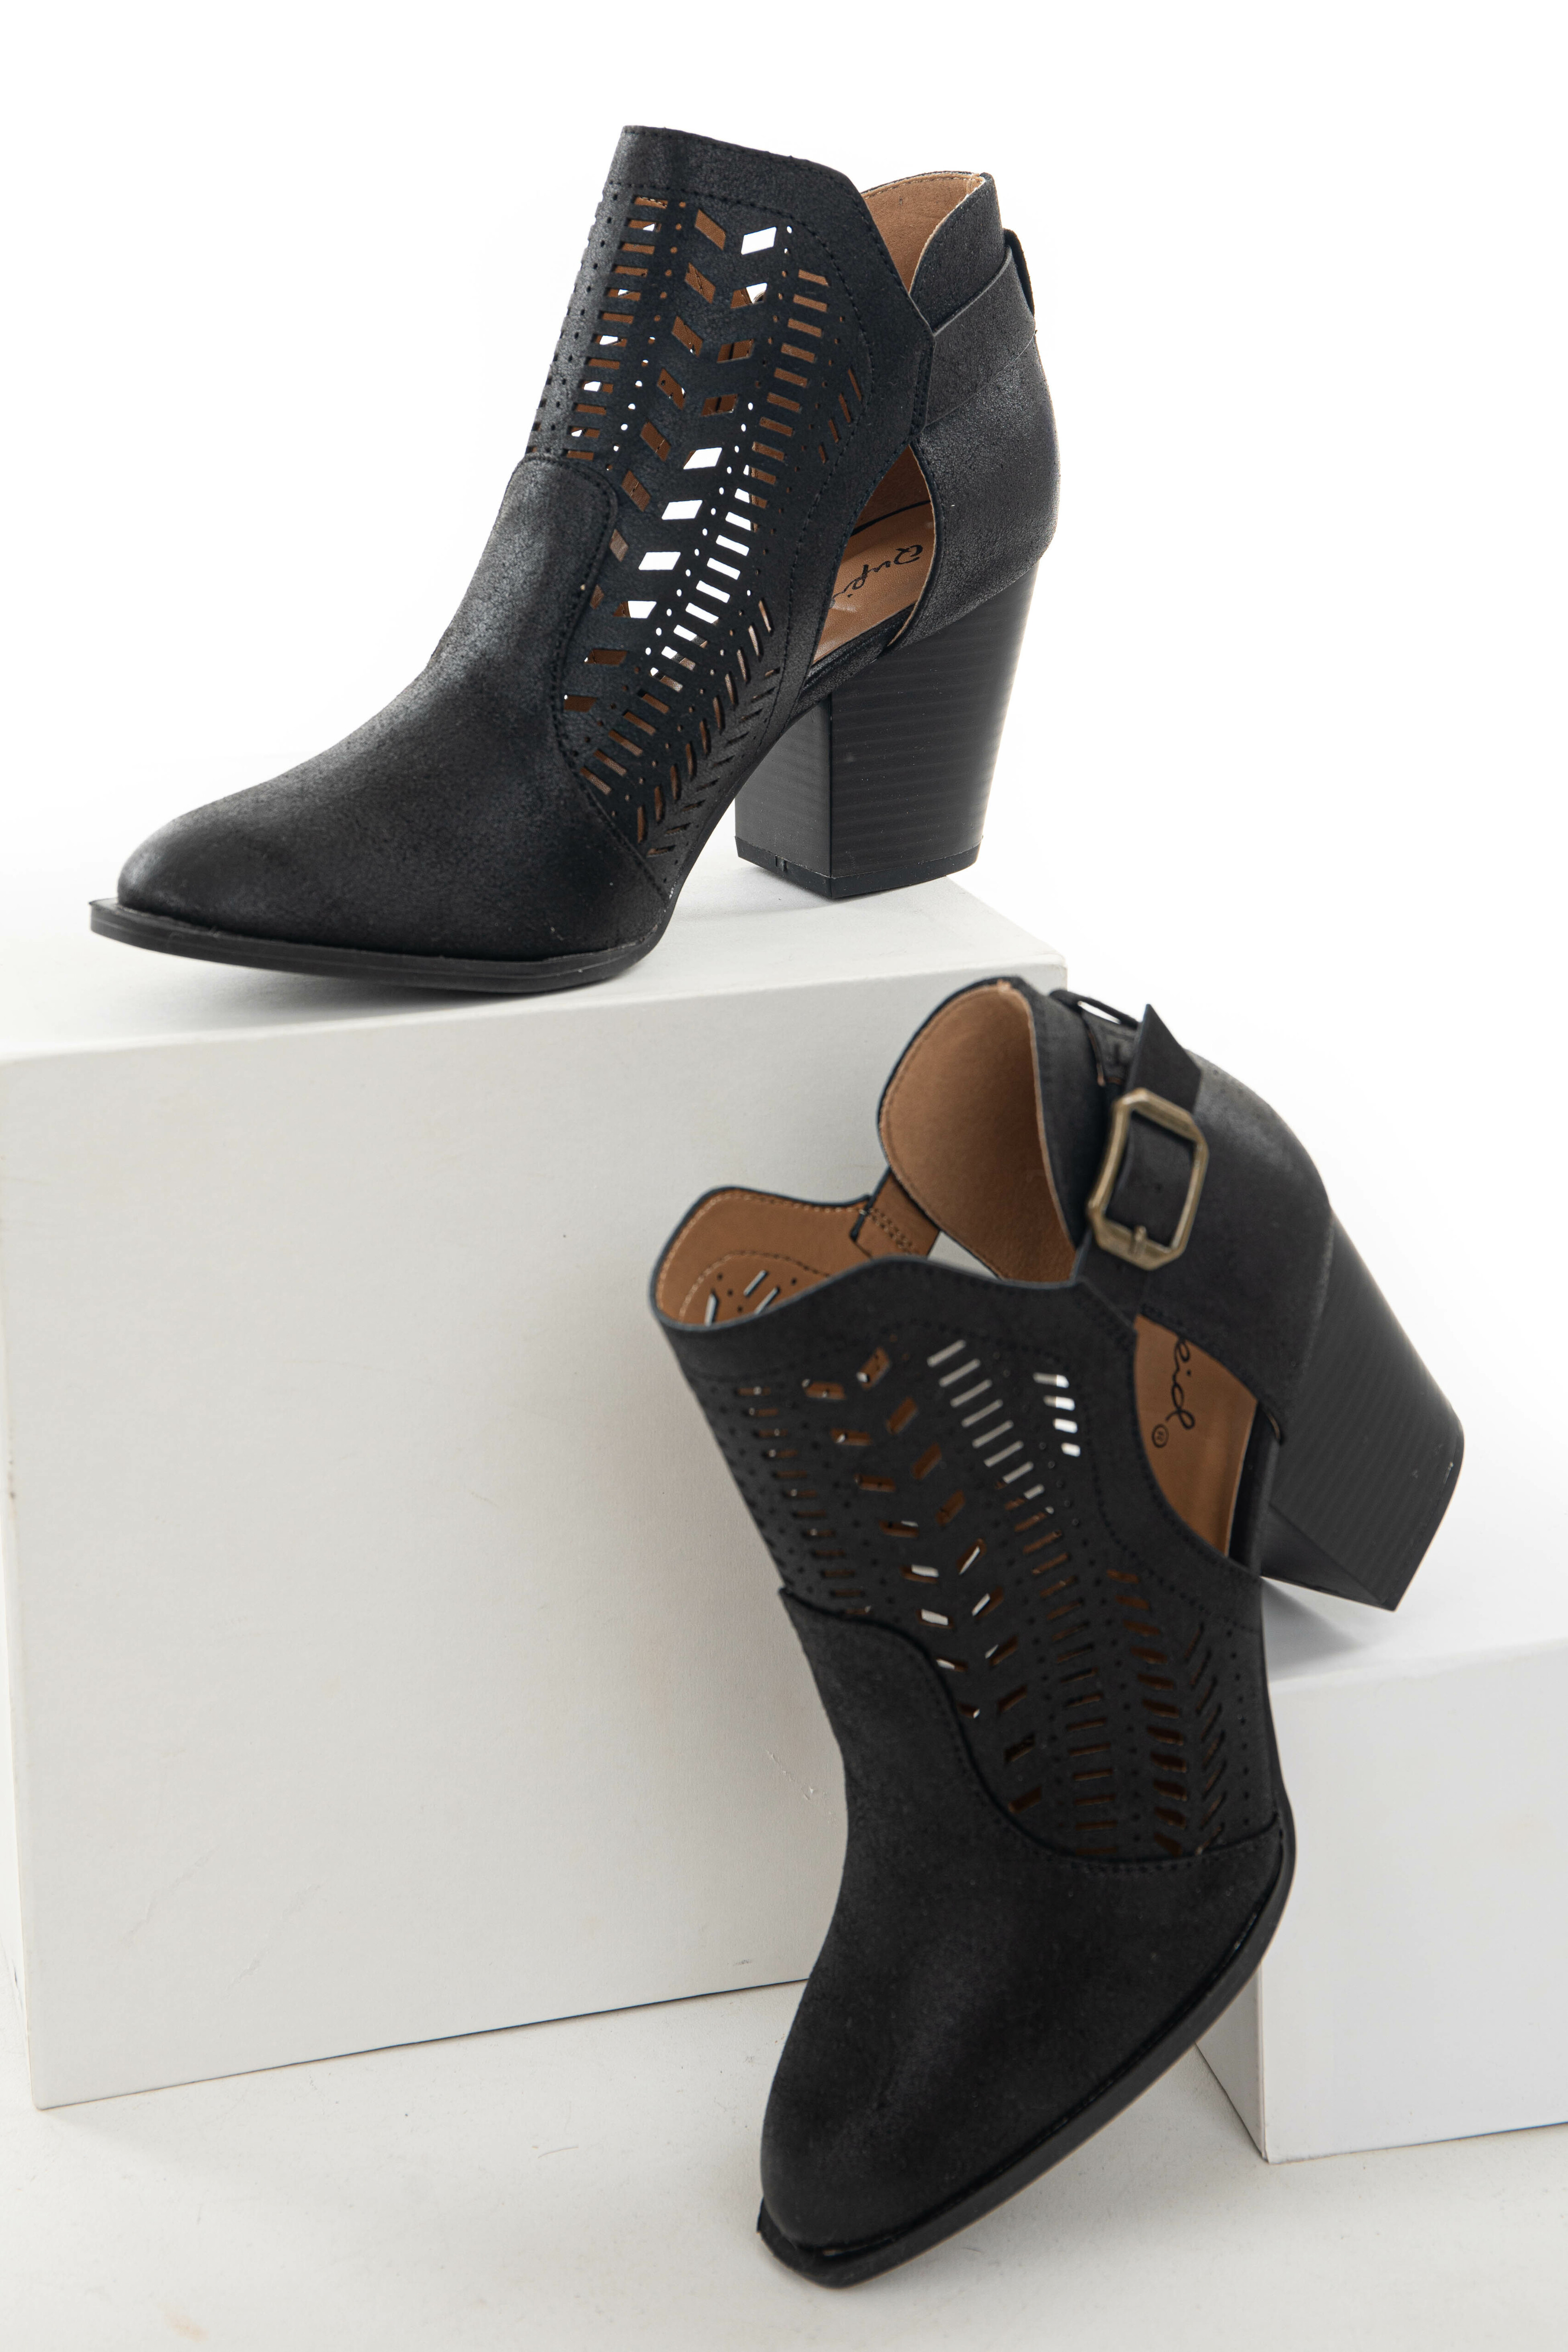 Black Faux Leather Heeled Bootie with Cutout Details